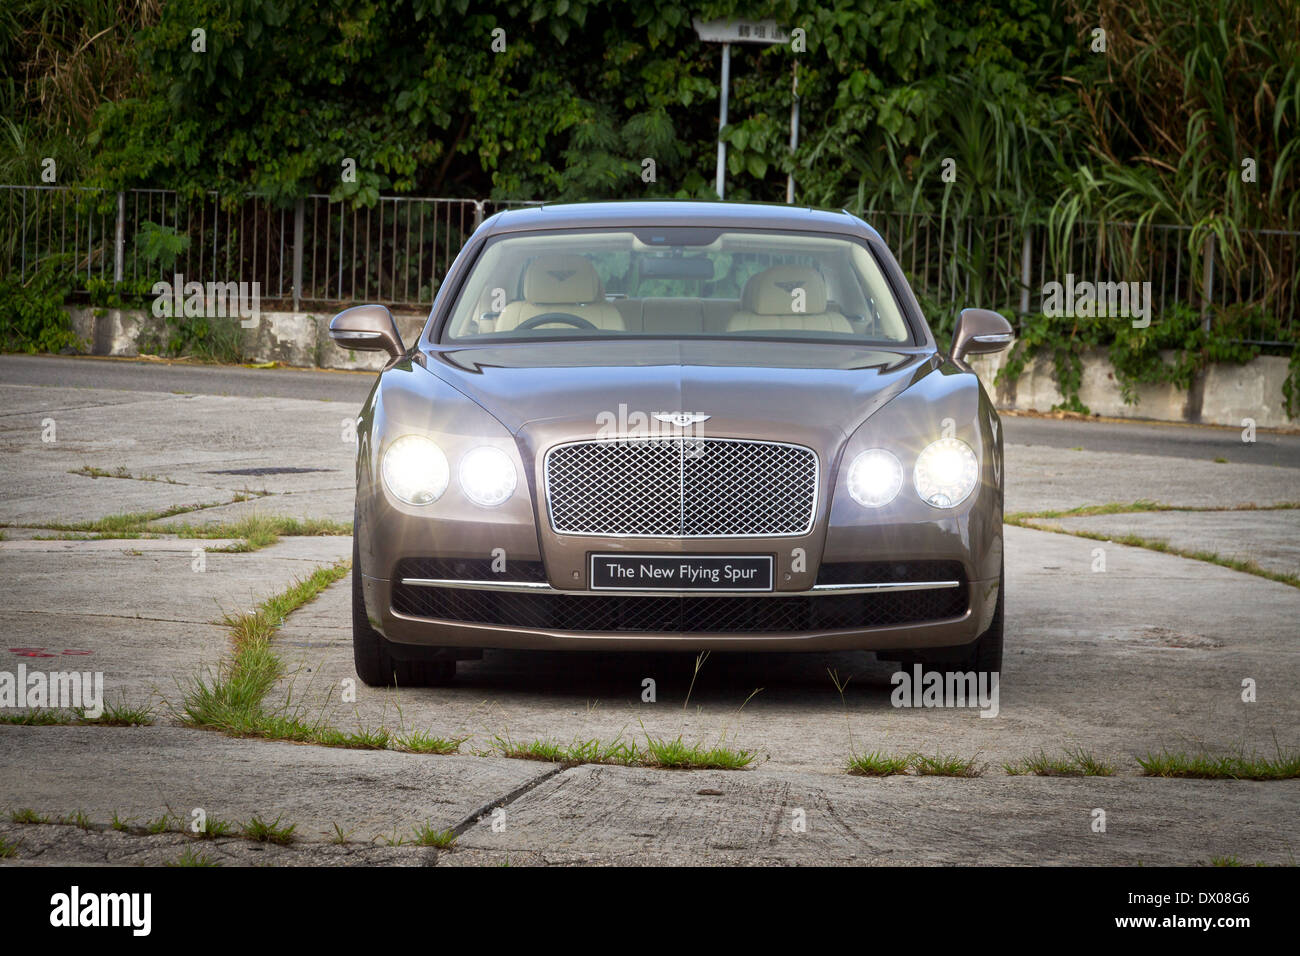 Bentley The New Flying Spur 2013 Model with Golden Brown Color - Stock Image